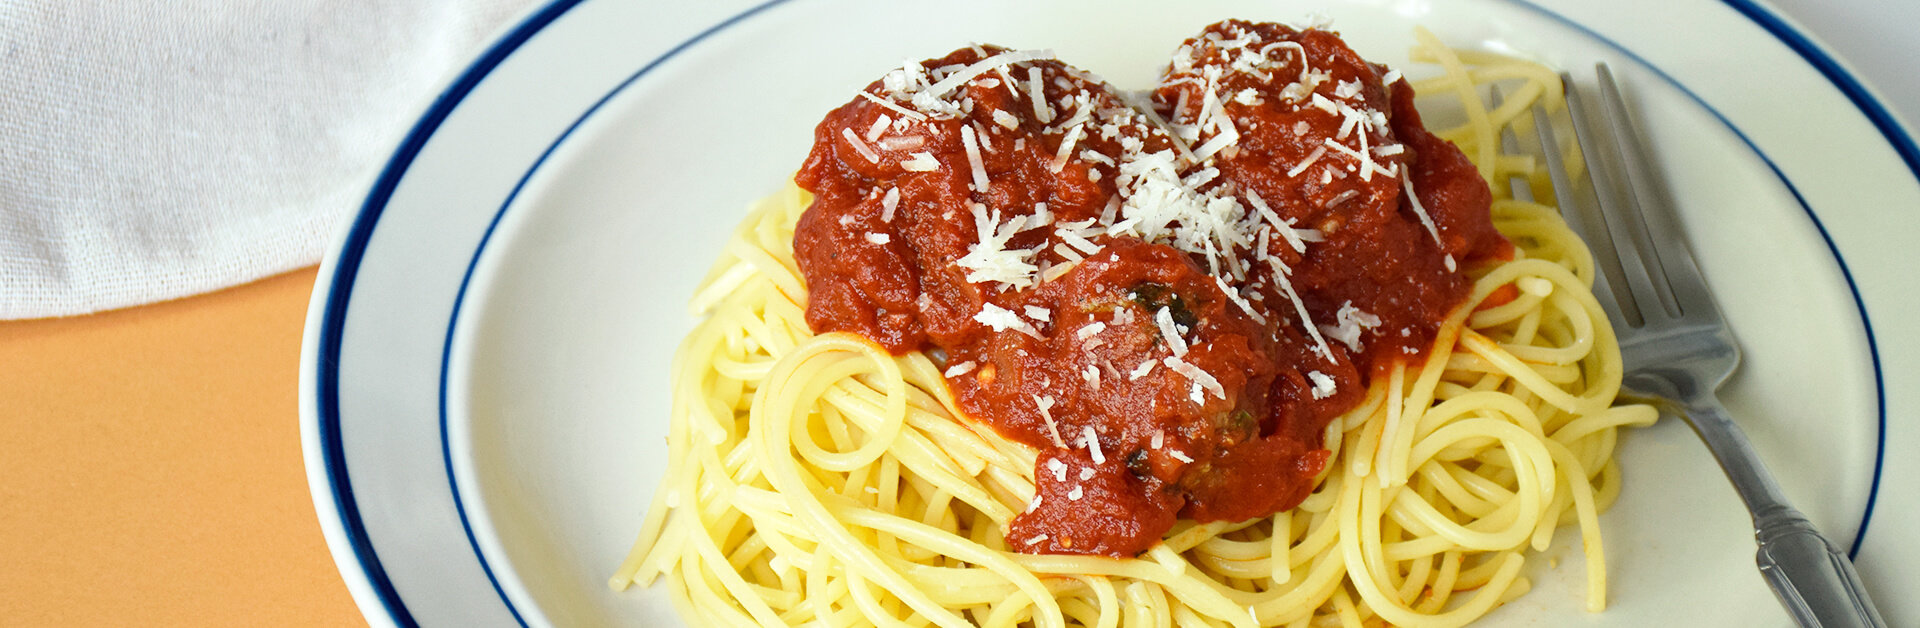 Spaghetti and meatballs on a white plate with blue edges.